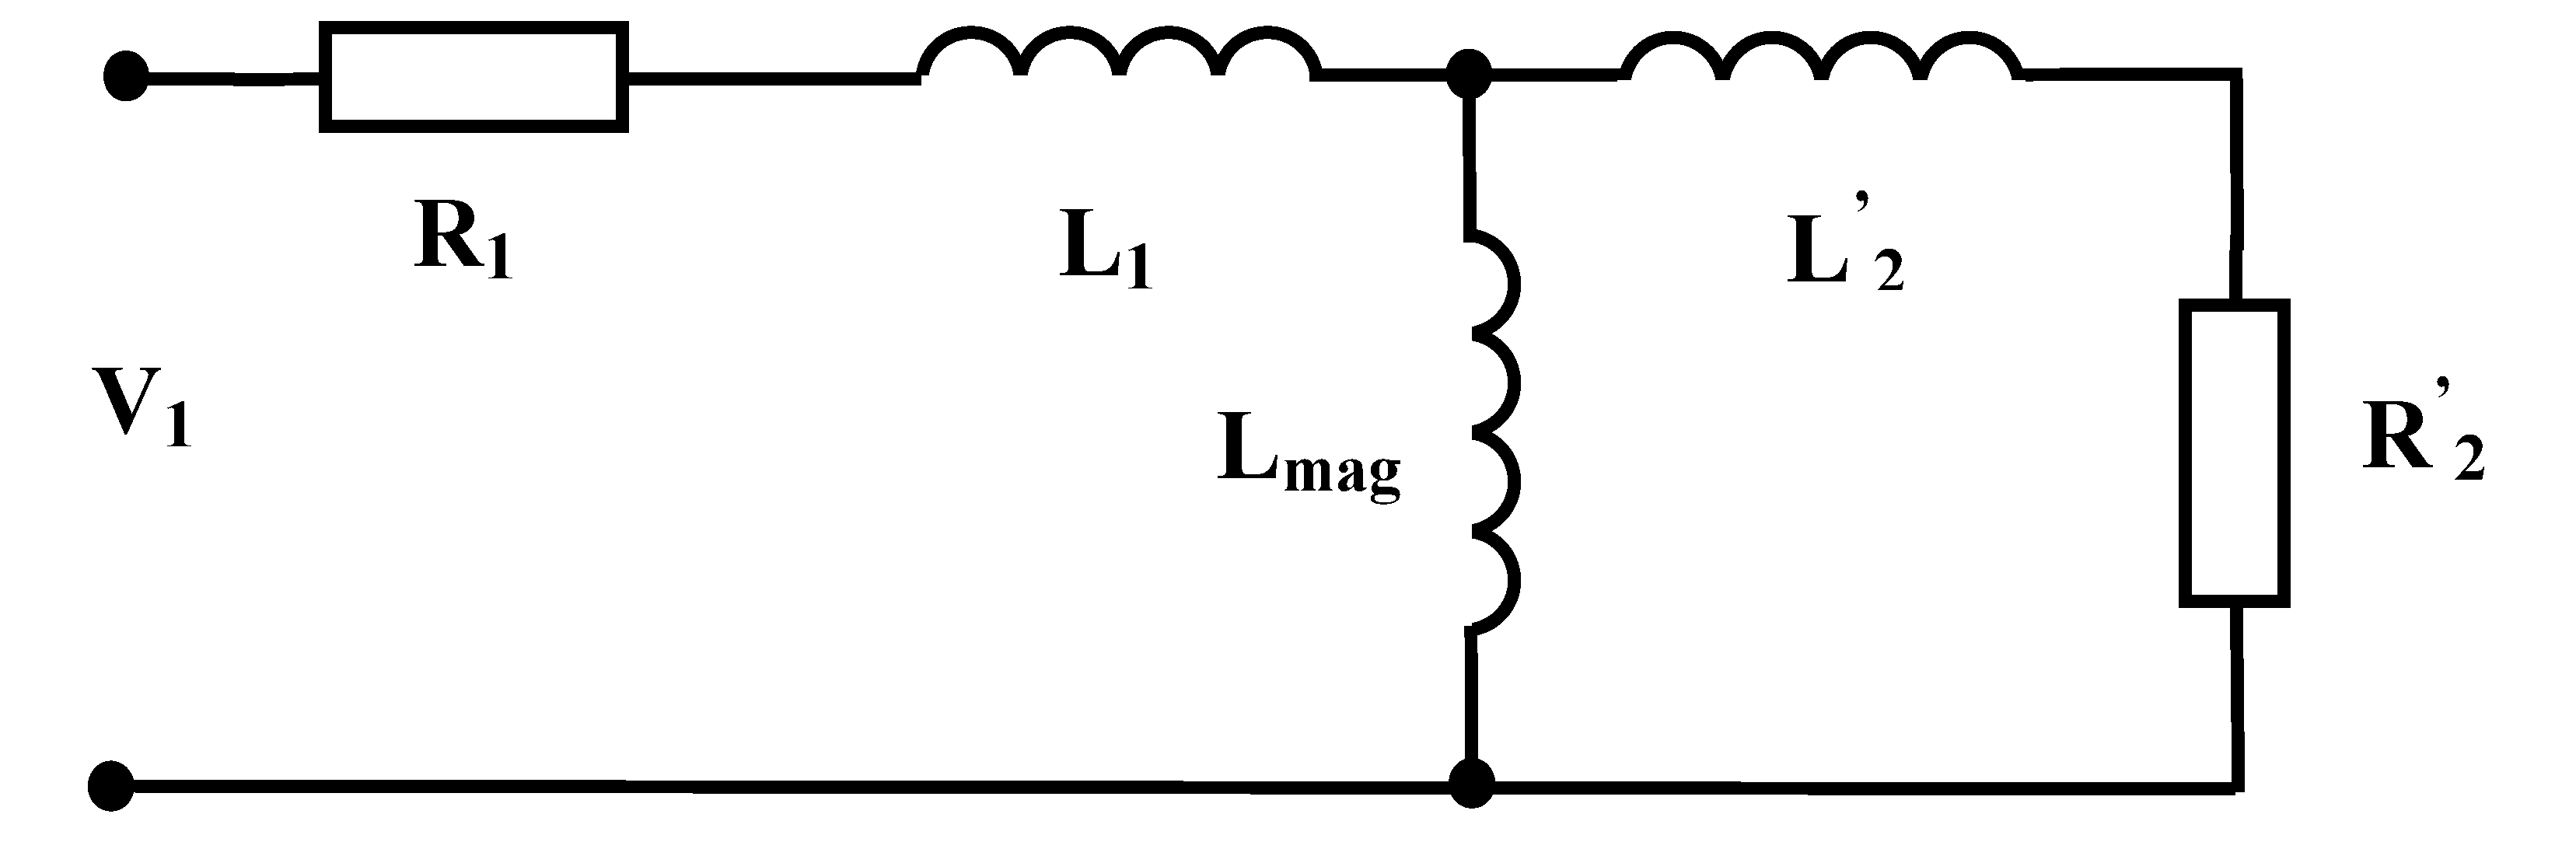 Analysis And Methodology For Determining The Parasitic Capacitances Way Motor Operates Induction With A Cage Was Invented By Figure 16 Equivalent Circuit Of Low Frequency